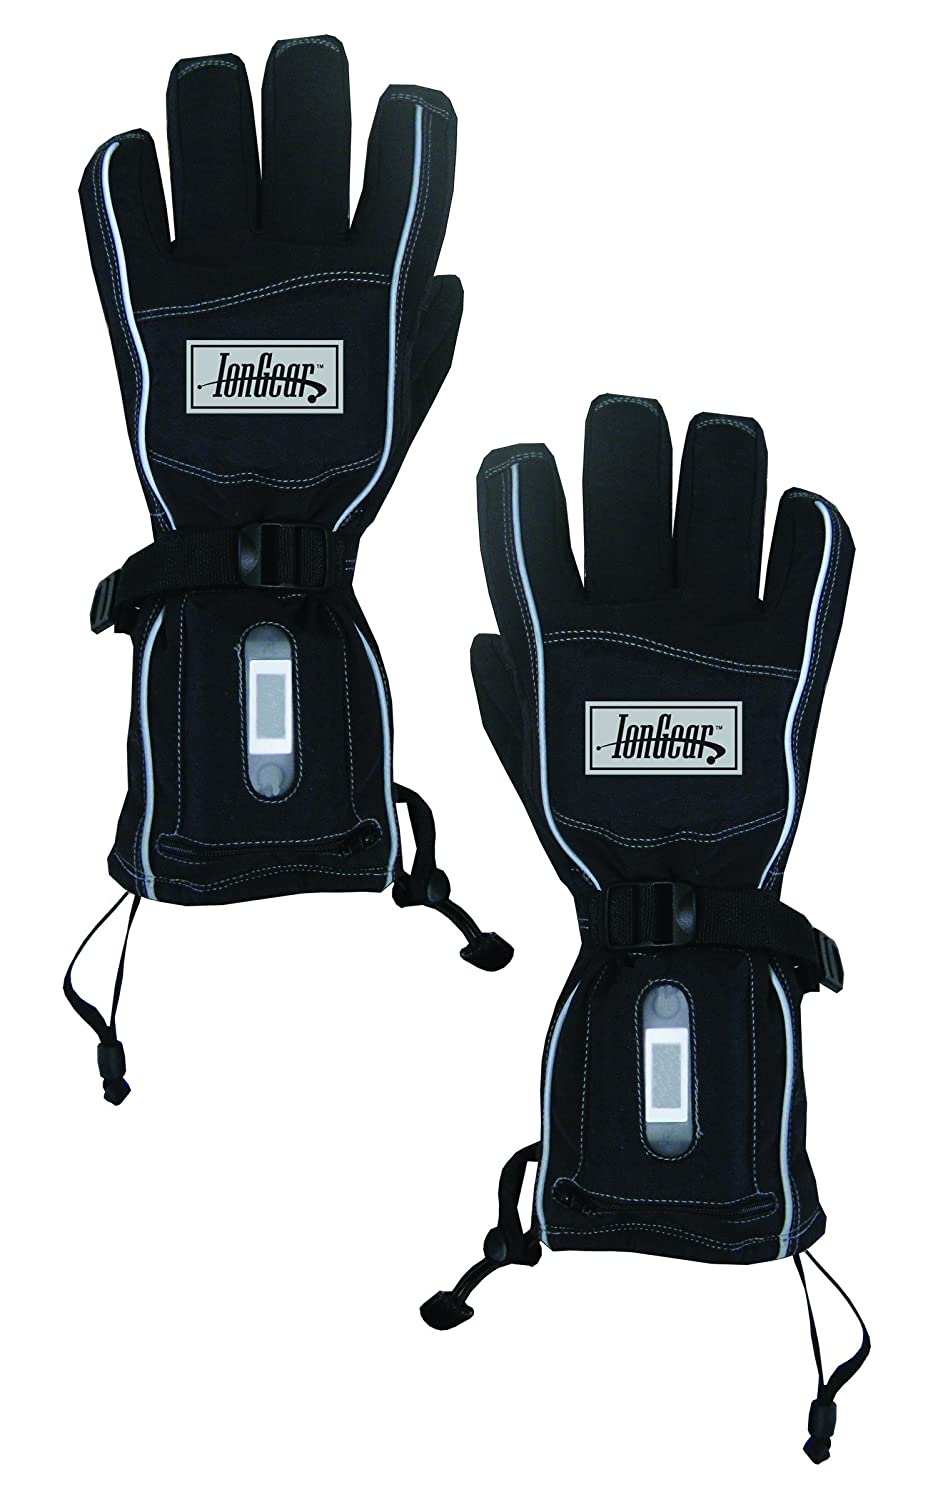 Motorcycle gloves heated battery - Amazon Com Techniche Battery Powered Iongear Heating Gloves Home Improvement